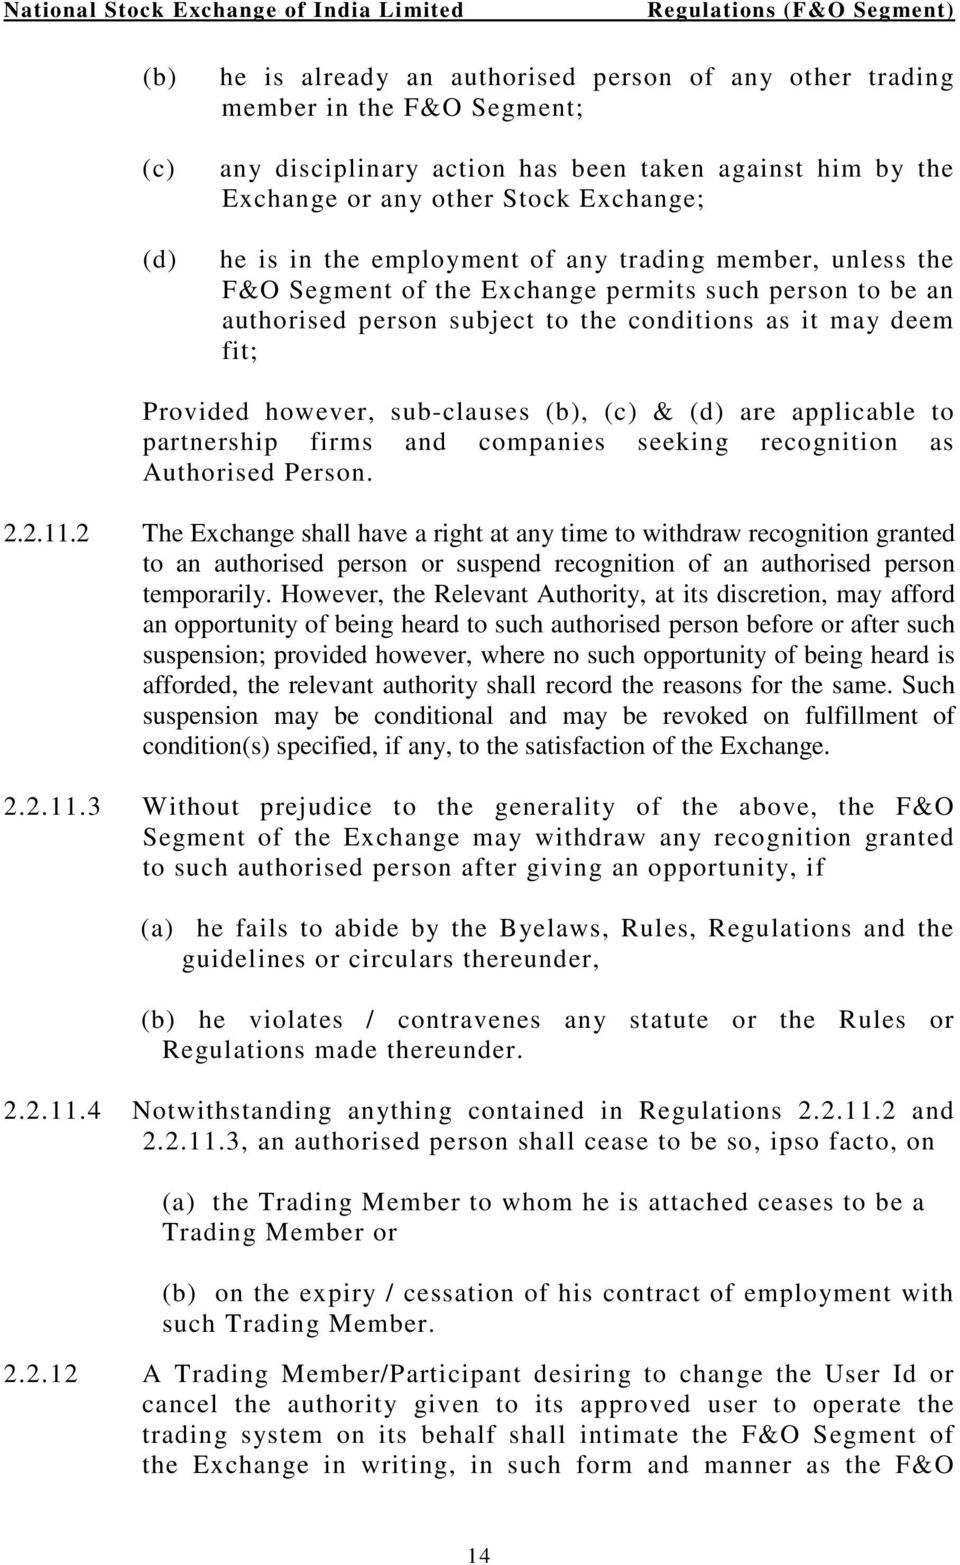 (b), (c) & (d) are applicable to partnership firms and companies seeking recognition as Authorised Person. 2.2.11.